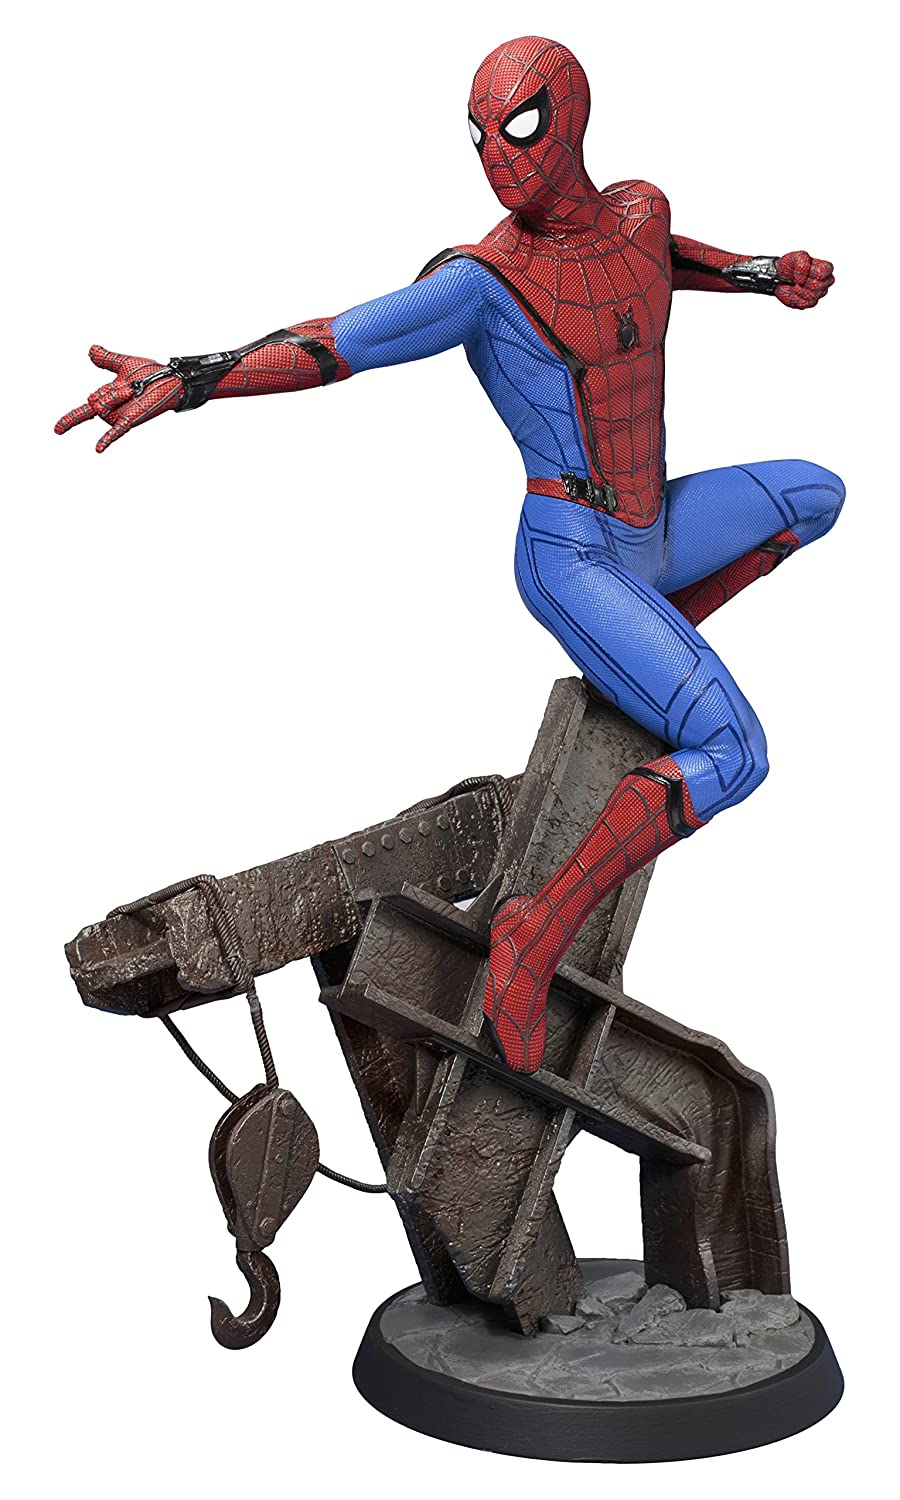 Kotobukiya Marvel Spider-Man: Homecoming Spider-Man ArtFx 1/6 Scale Estatua